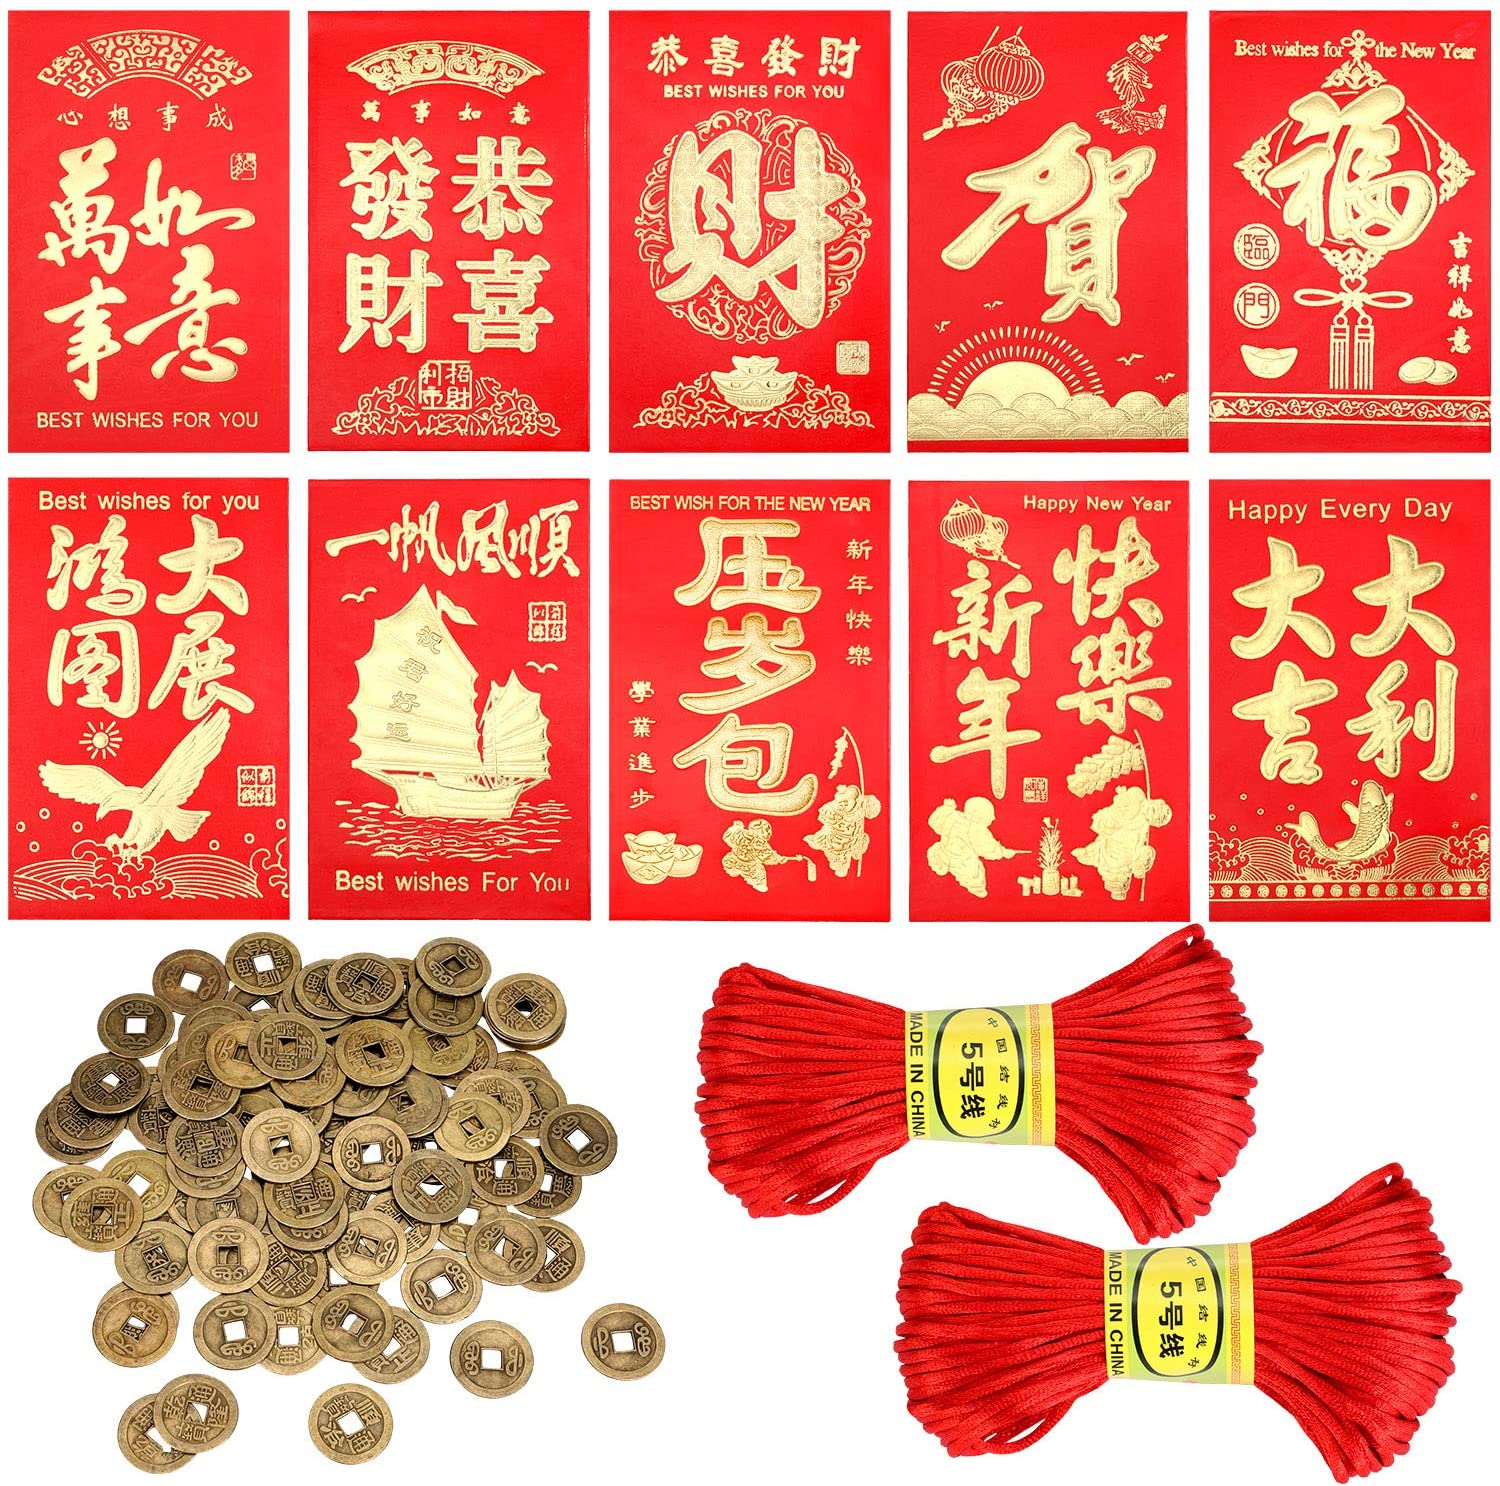 112 Pieces Chinese New Year Decorations, Includes 60 Pieces Chinese Red Envelopes, 50 Pieces Chinese Good Luck Fortune Coins with 2 Rolls Satin Nylon Trim Cord for Chinese Spring Festival